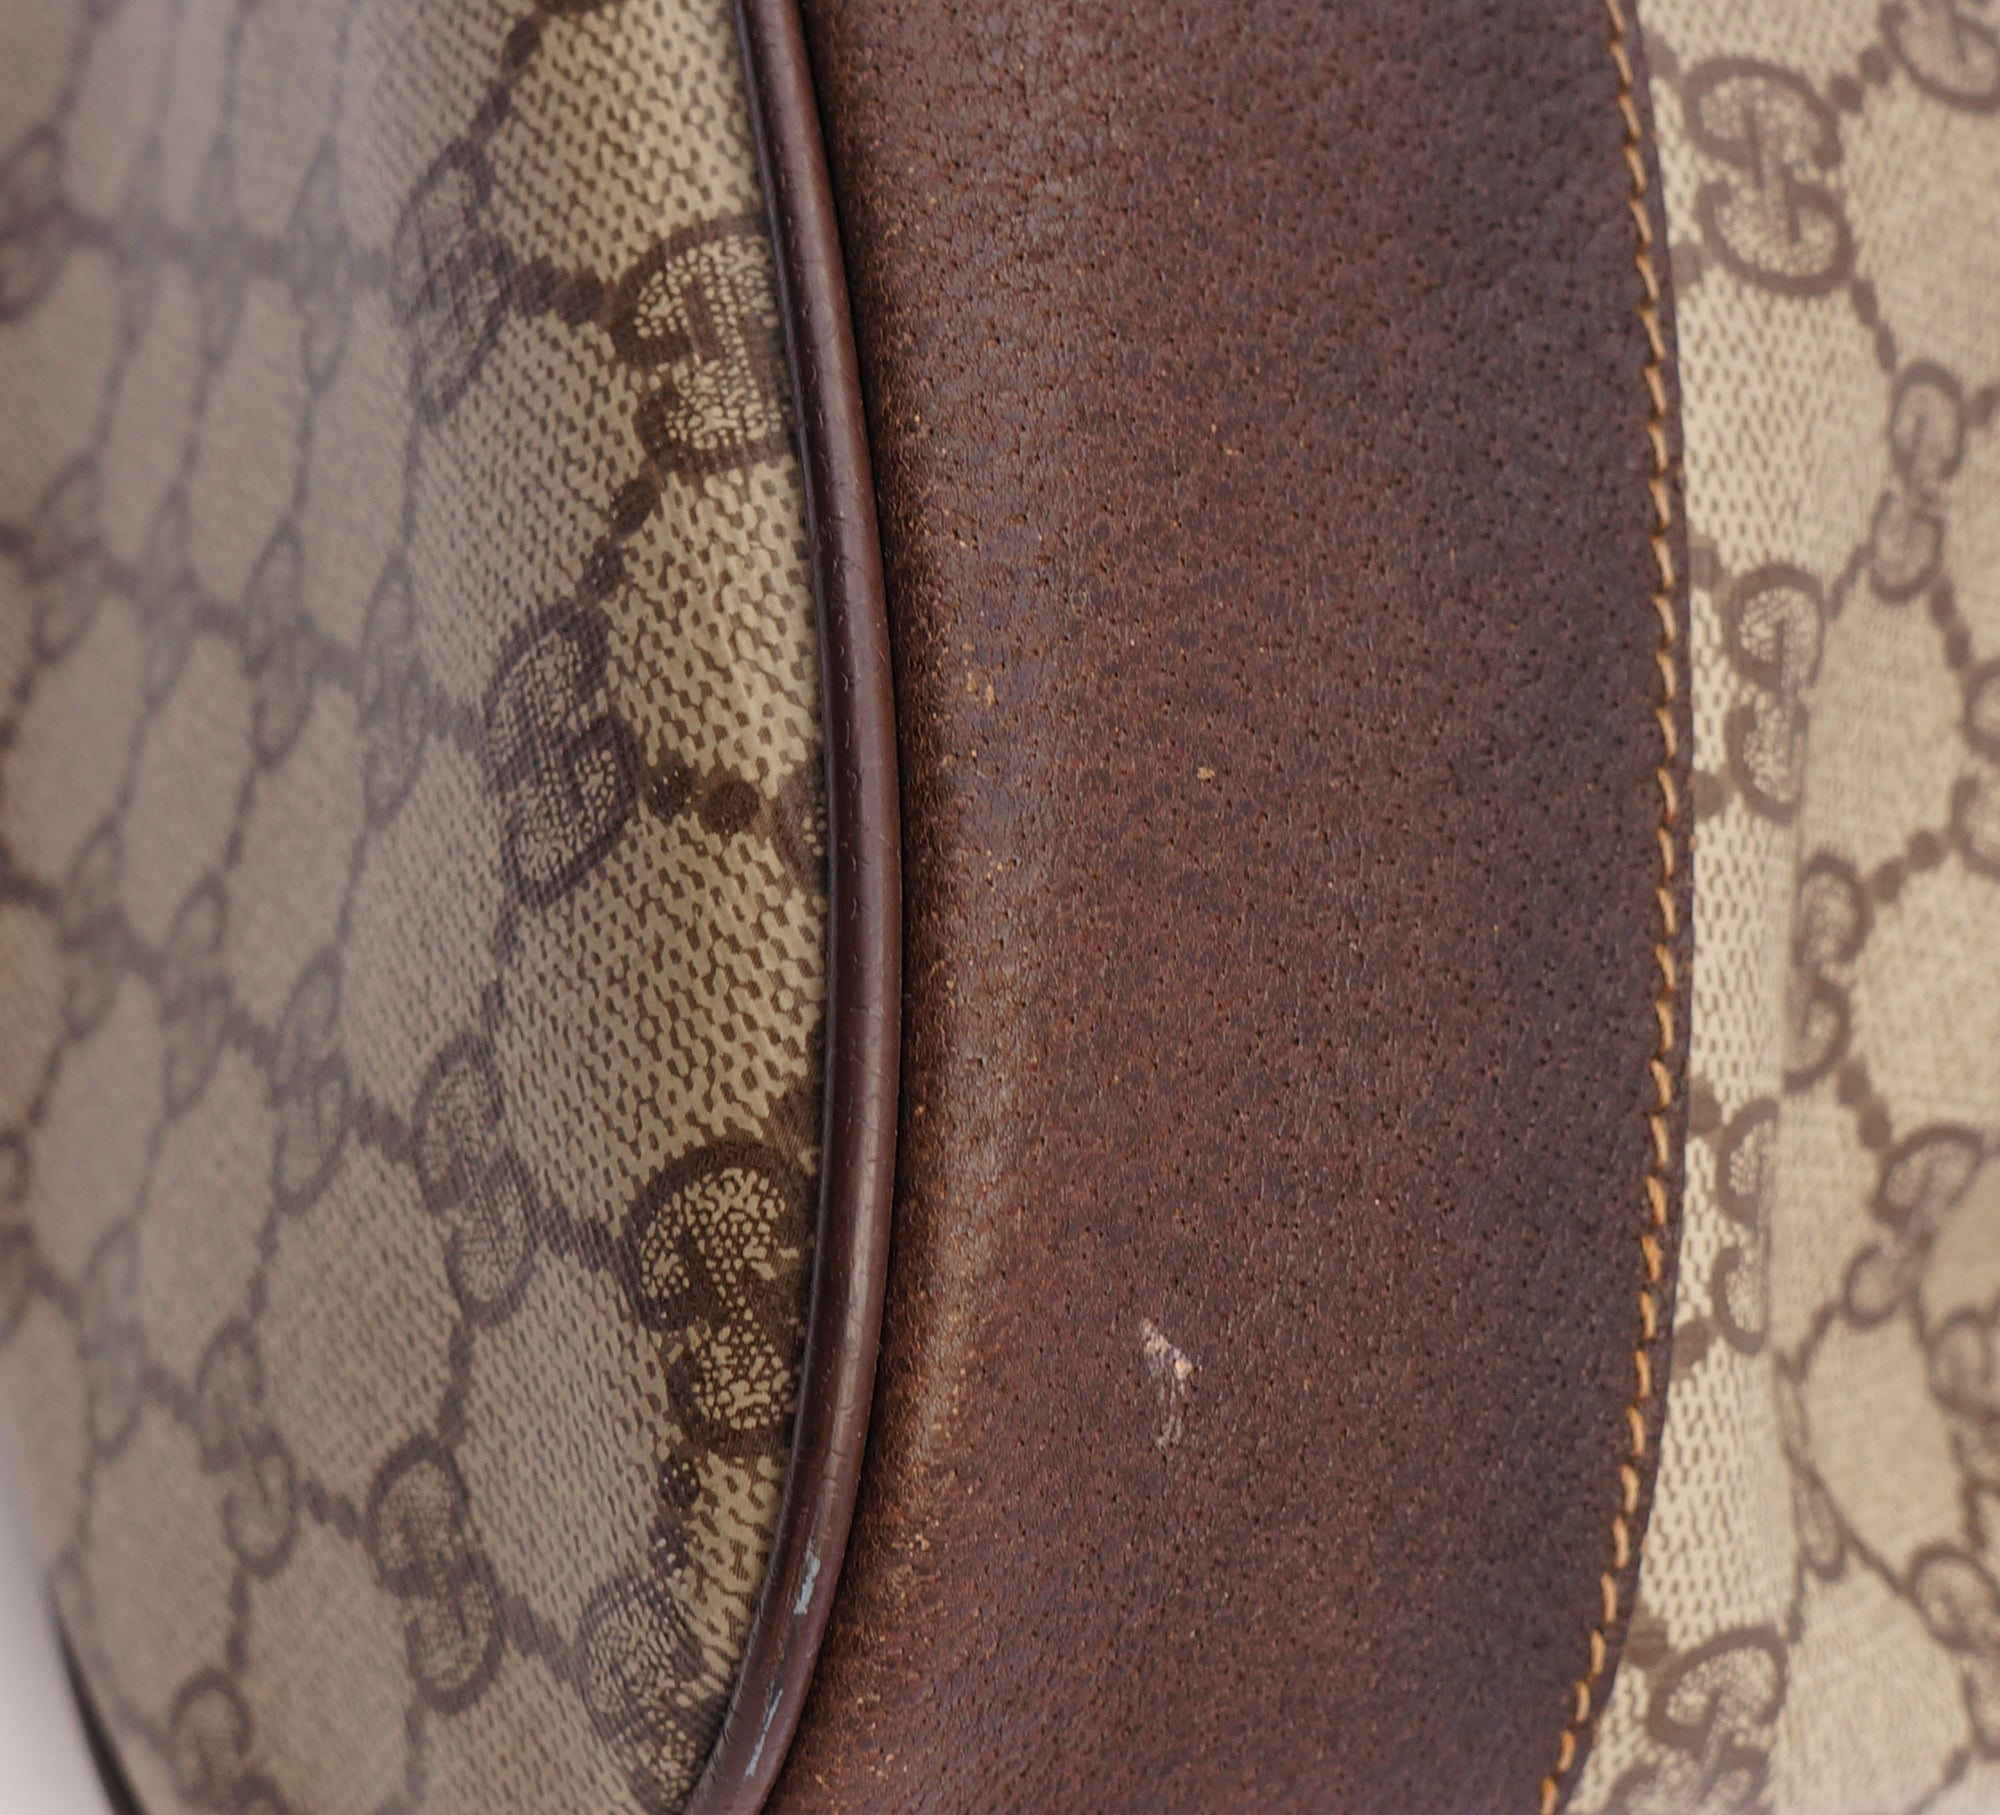 85465edfbe1a3 ... GUCCI WEB SUPREME BUCKET SHOULDER BAG Shop online the best value on authentic  designer used preowned ...